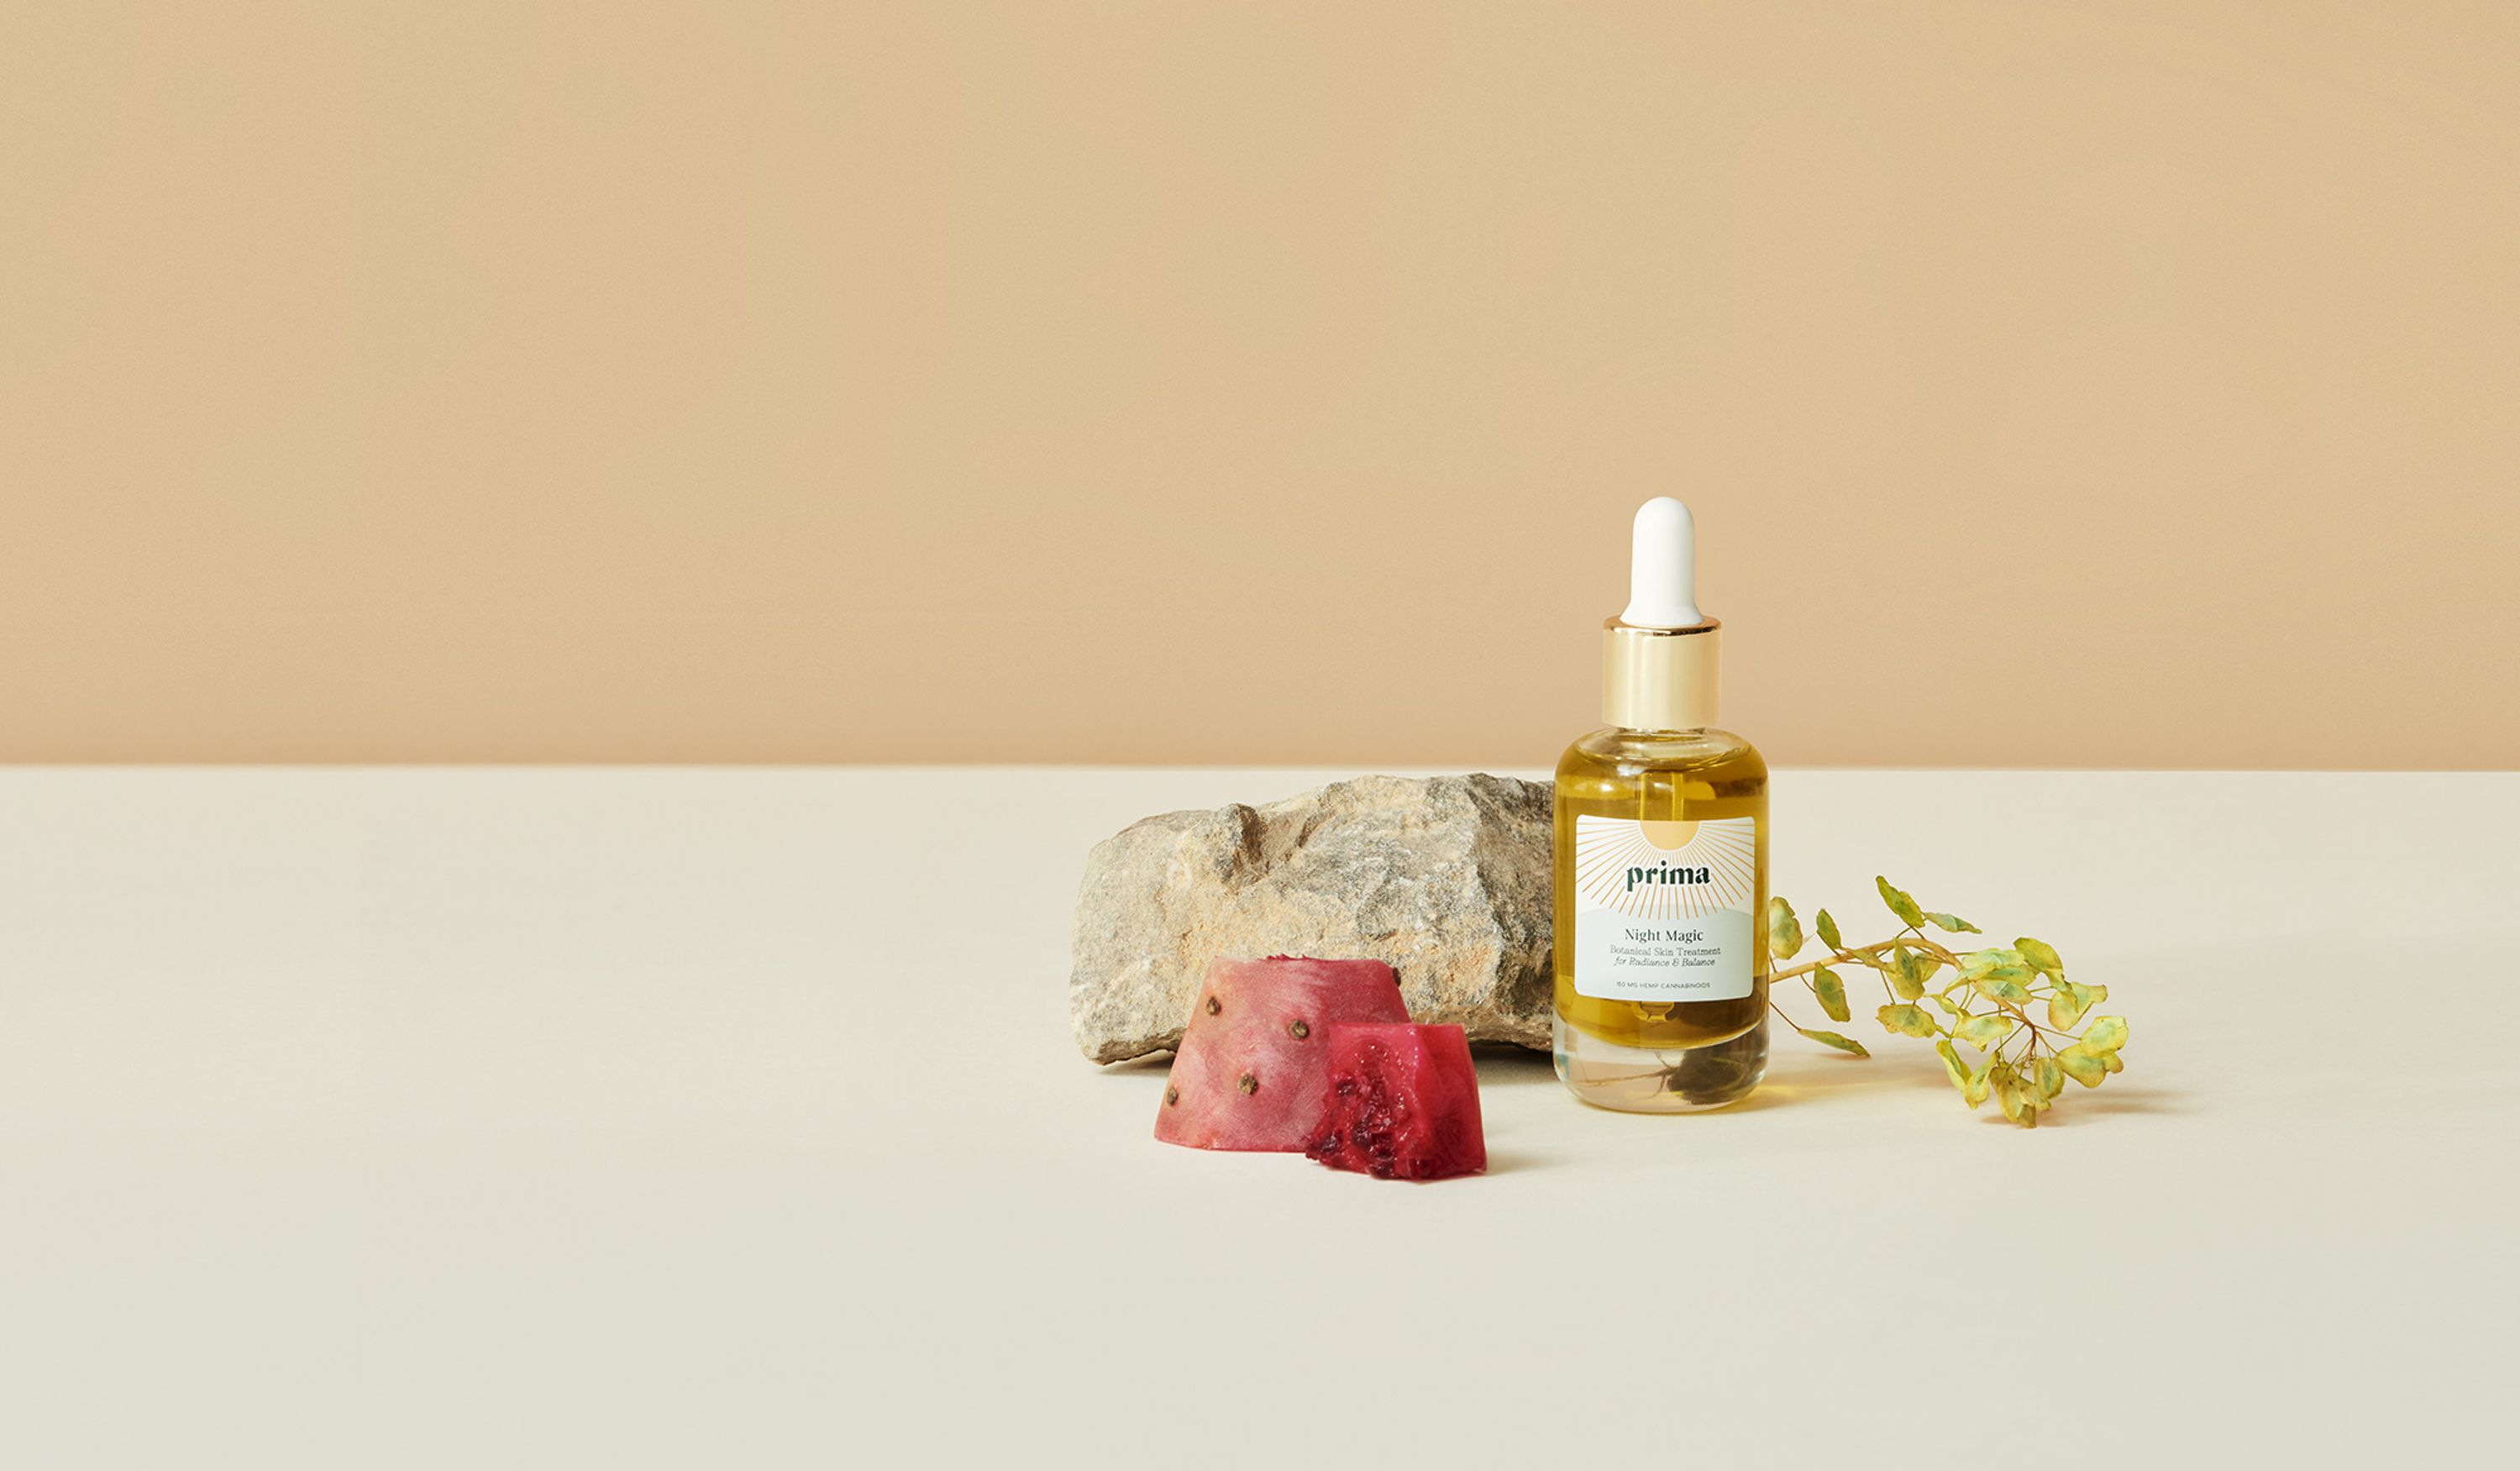 A magical overnight facial oil for smooth, glowing and balanced skin